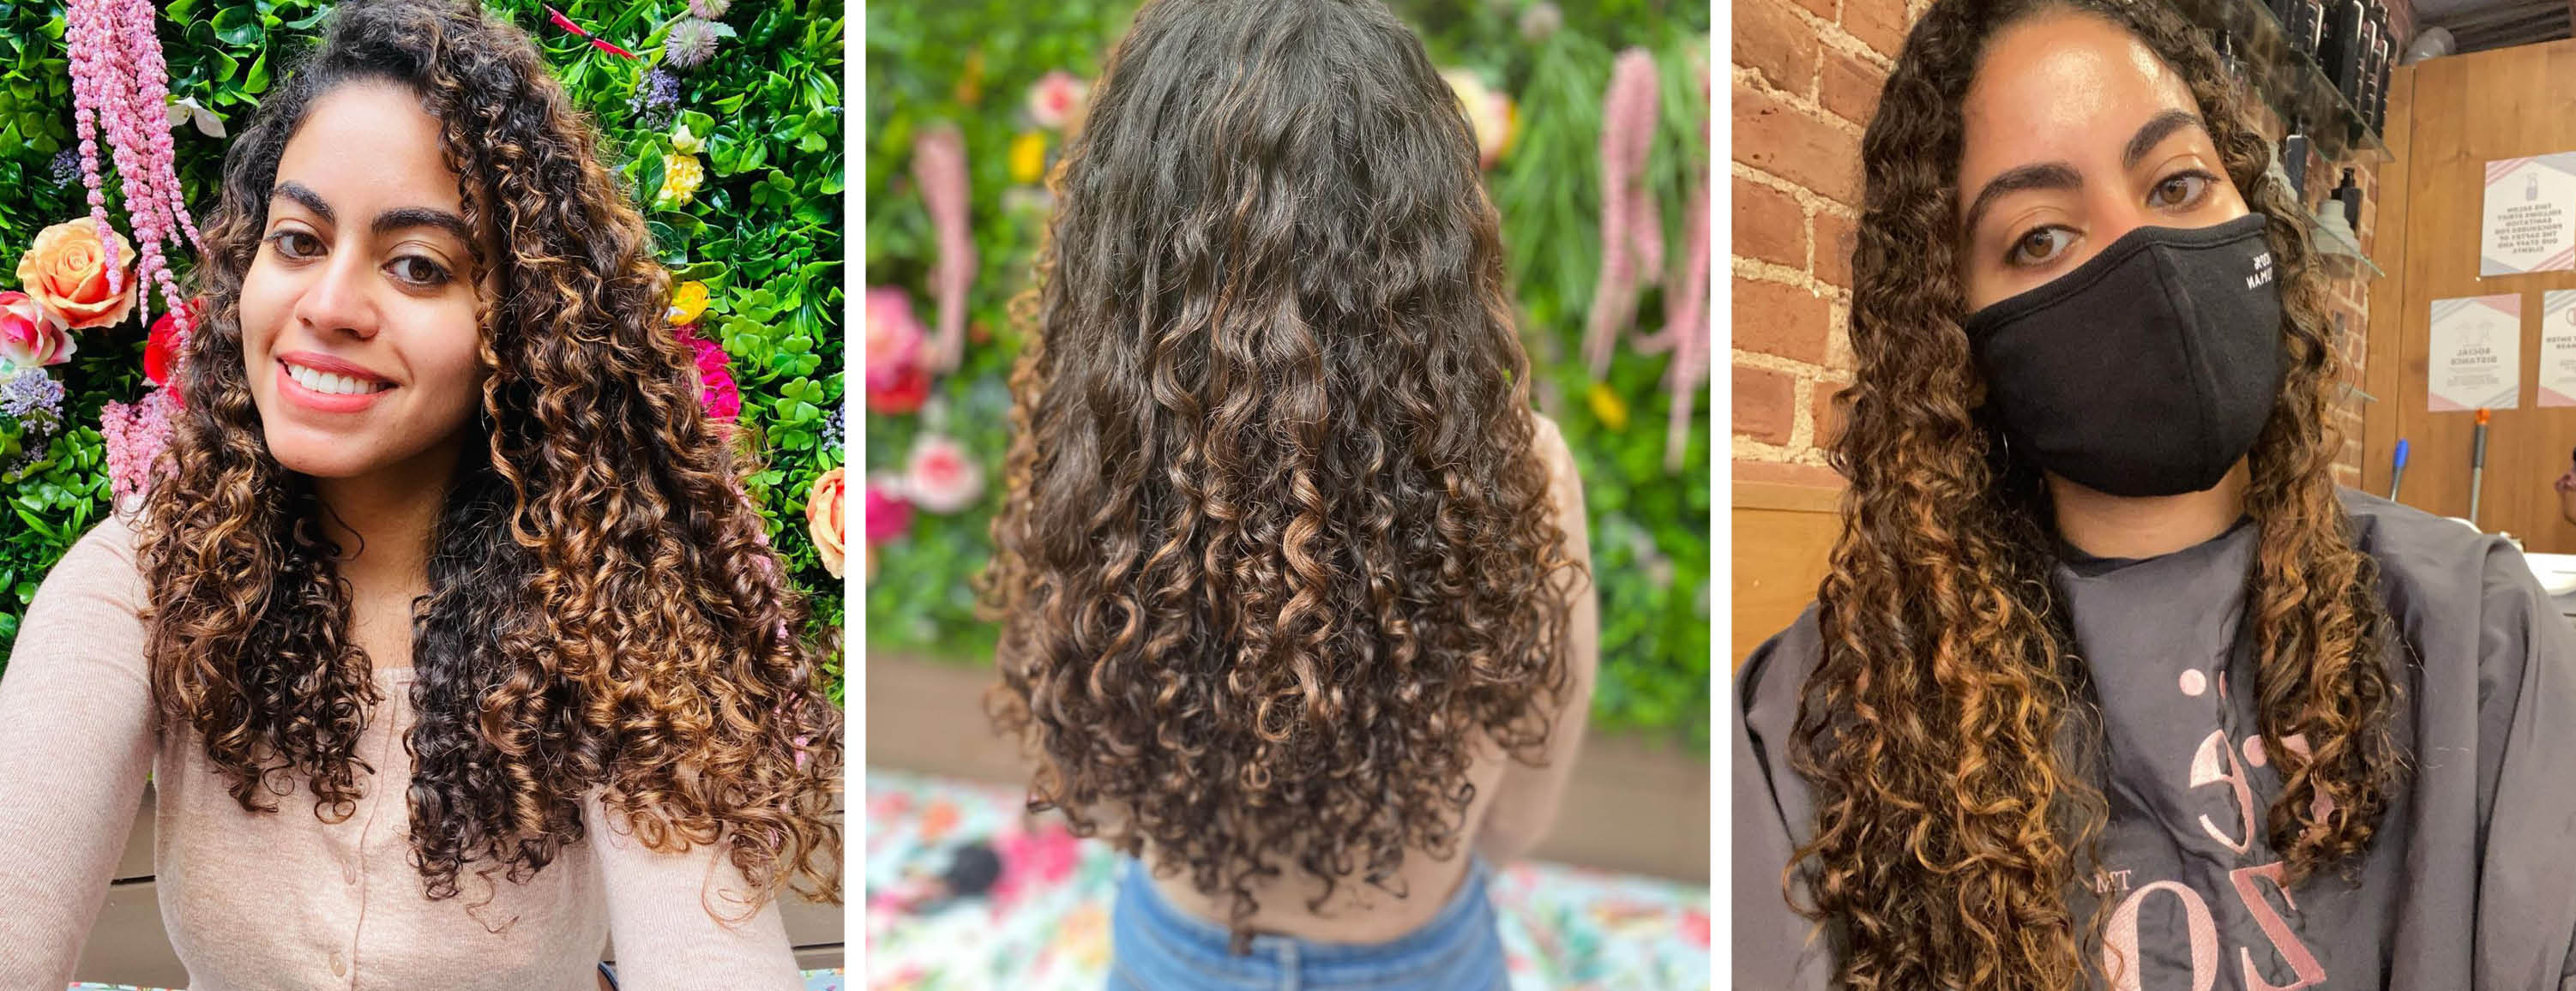 How to Keep color treated curls healthy this winter